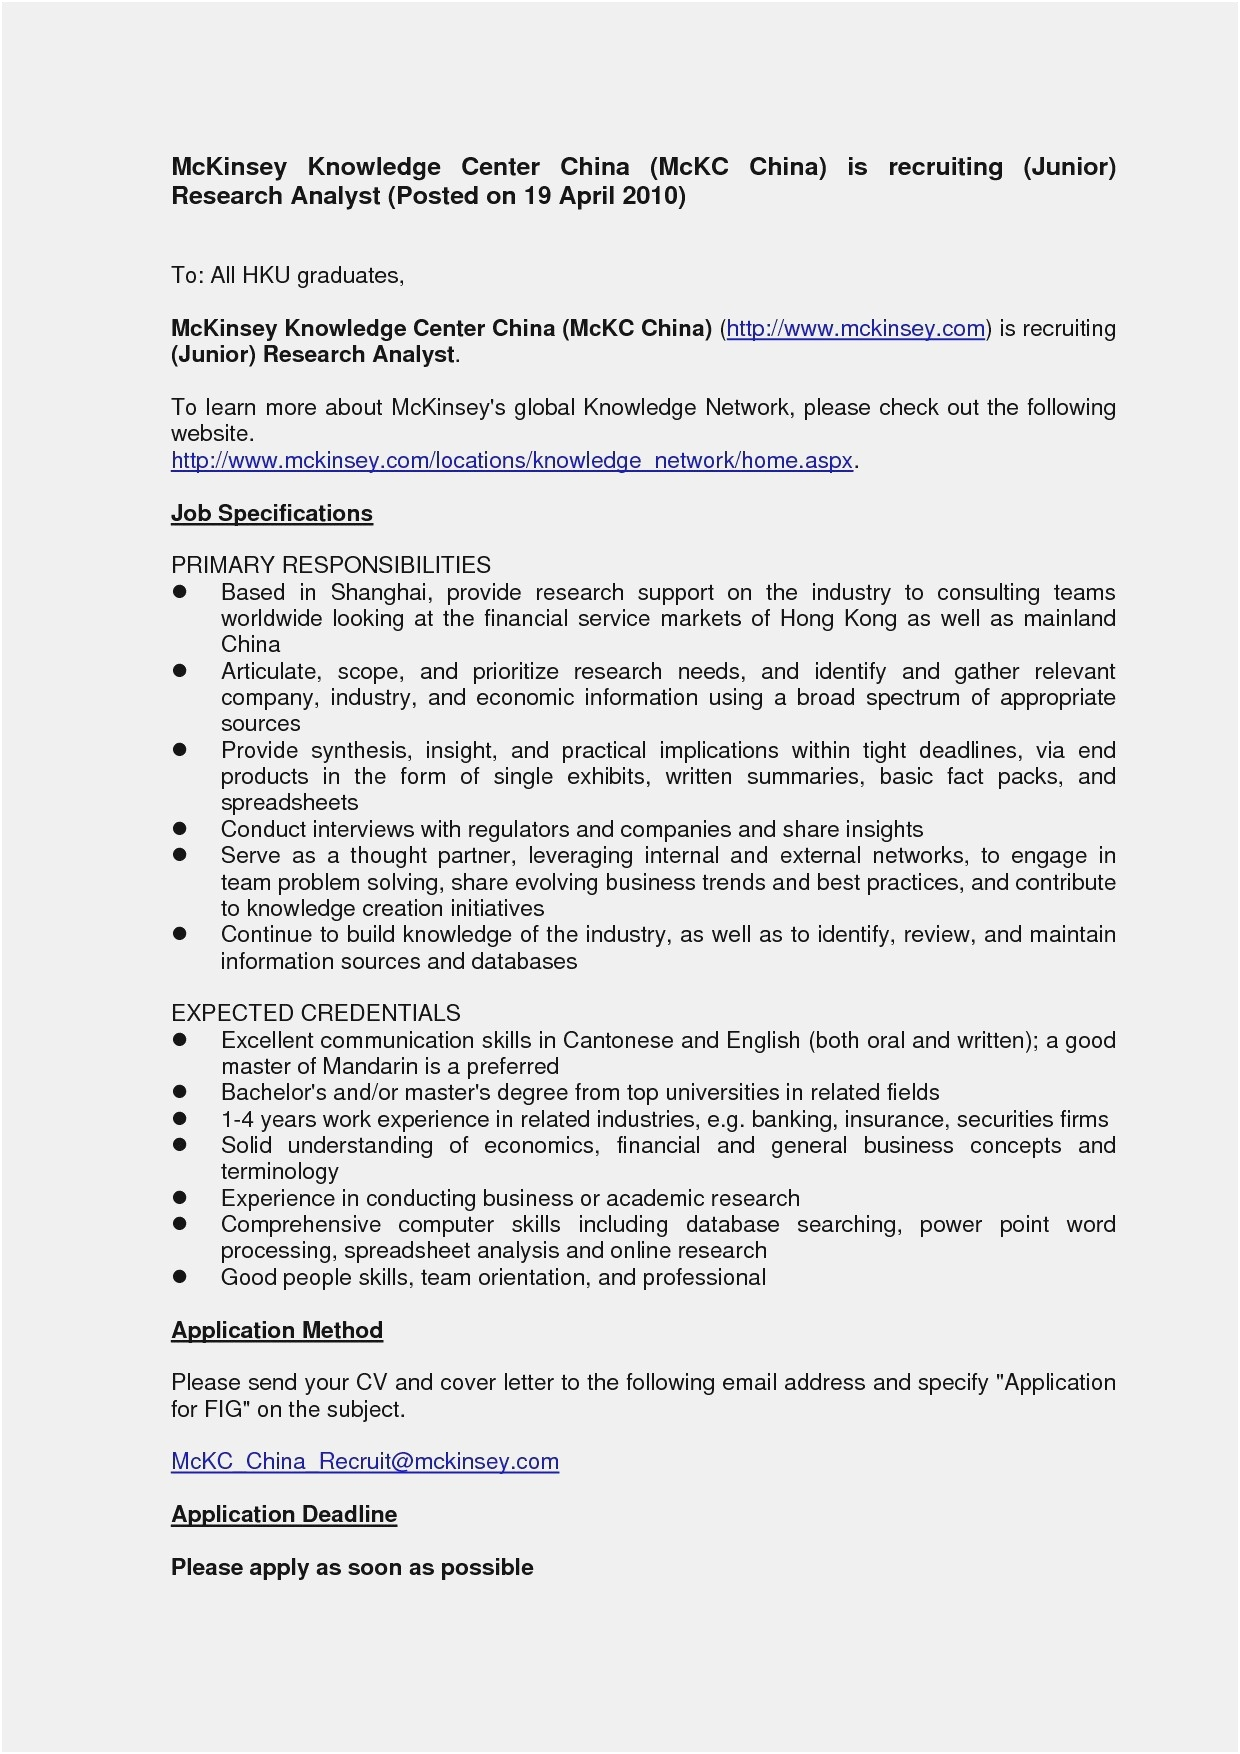 offer letter template google docs example-Free Letter Templates for Word New Appointment Letter Sample In Word format India New Od Consultant 20-o